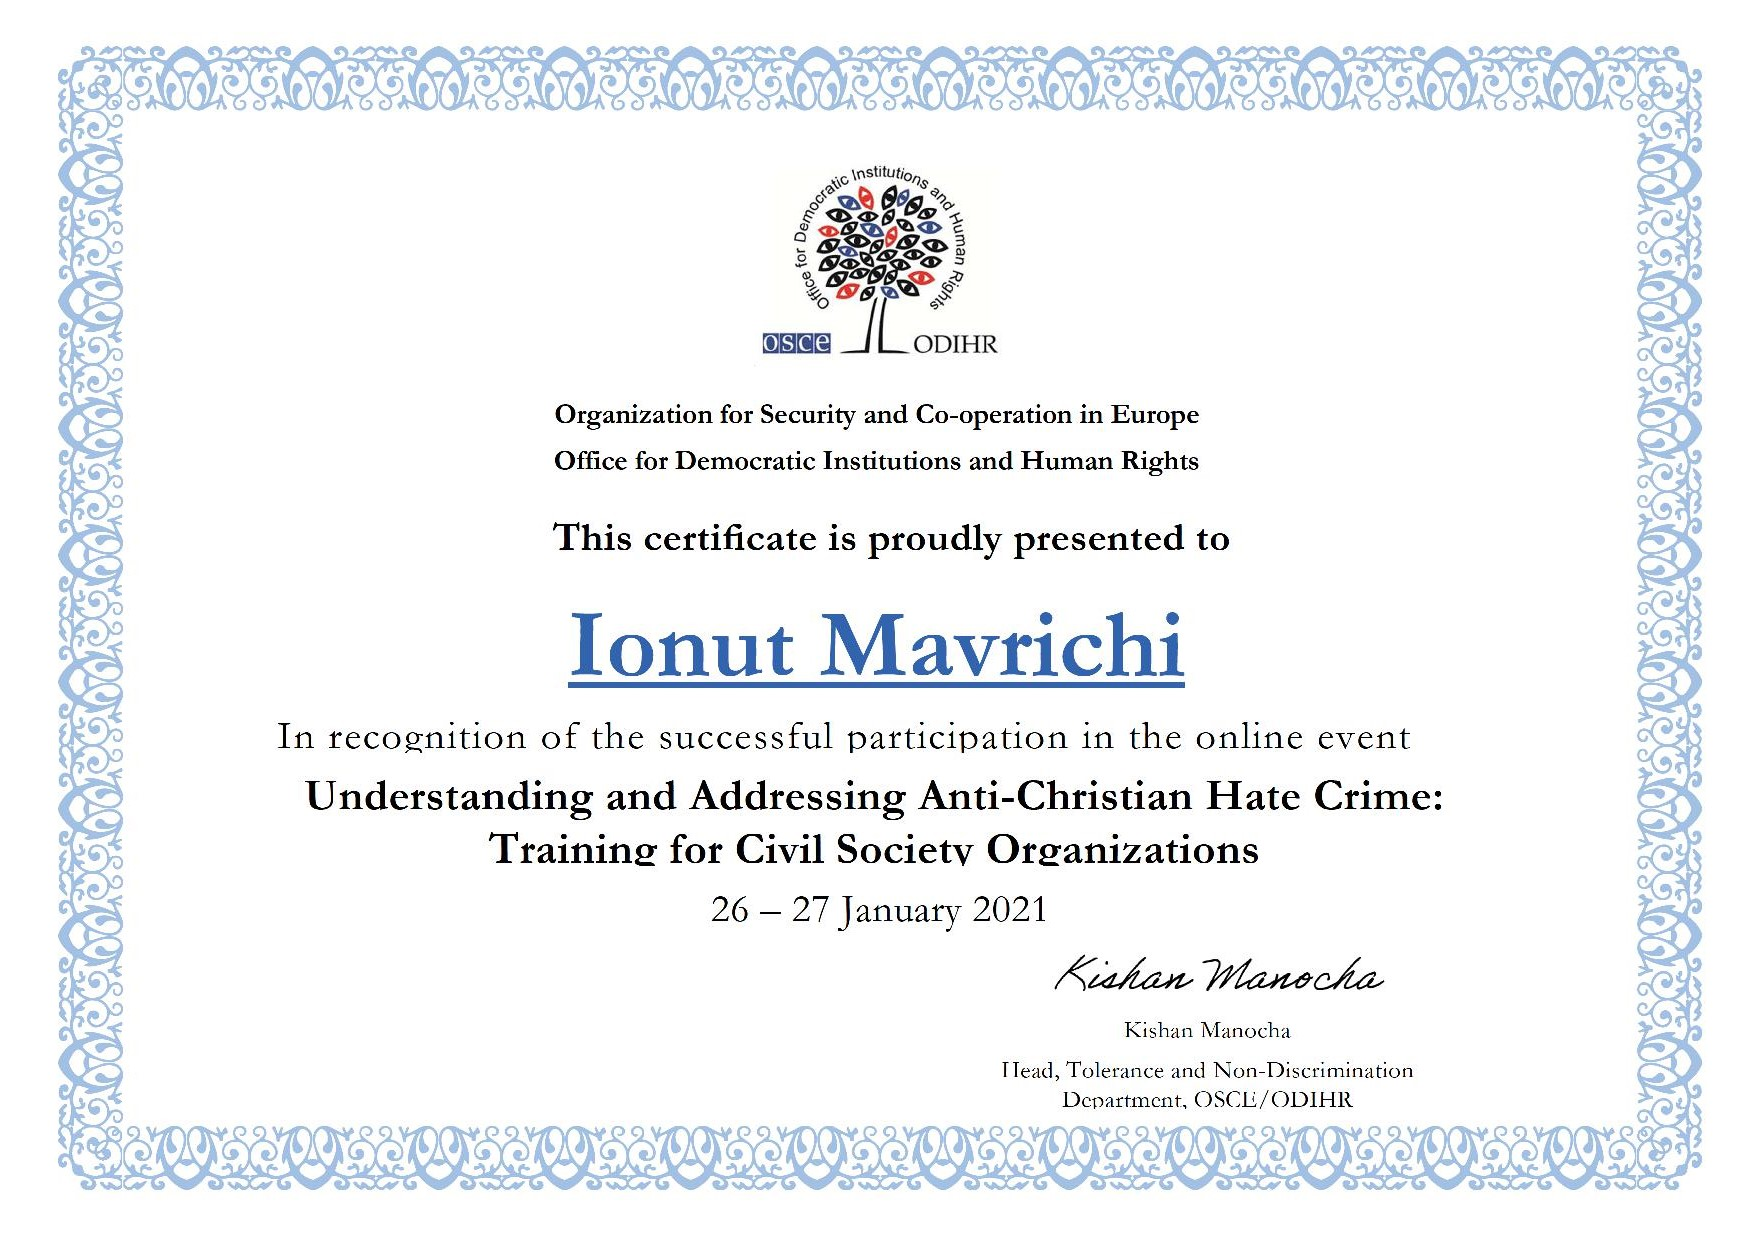 Participarea reprezentanților FoRB România la training-ul Understanding and Addressing Anti-Christian Hate Crime organizat de OSCE - Certificat Ionut Mavrichi